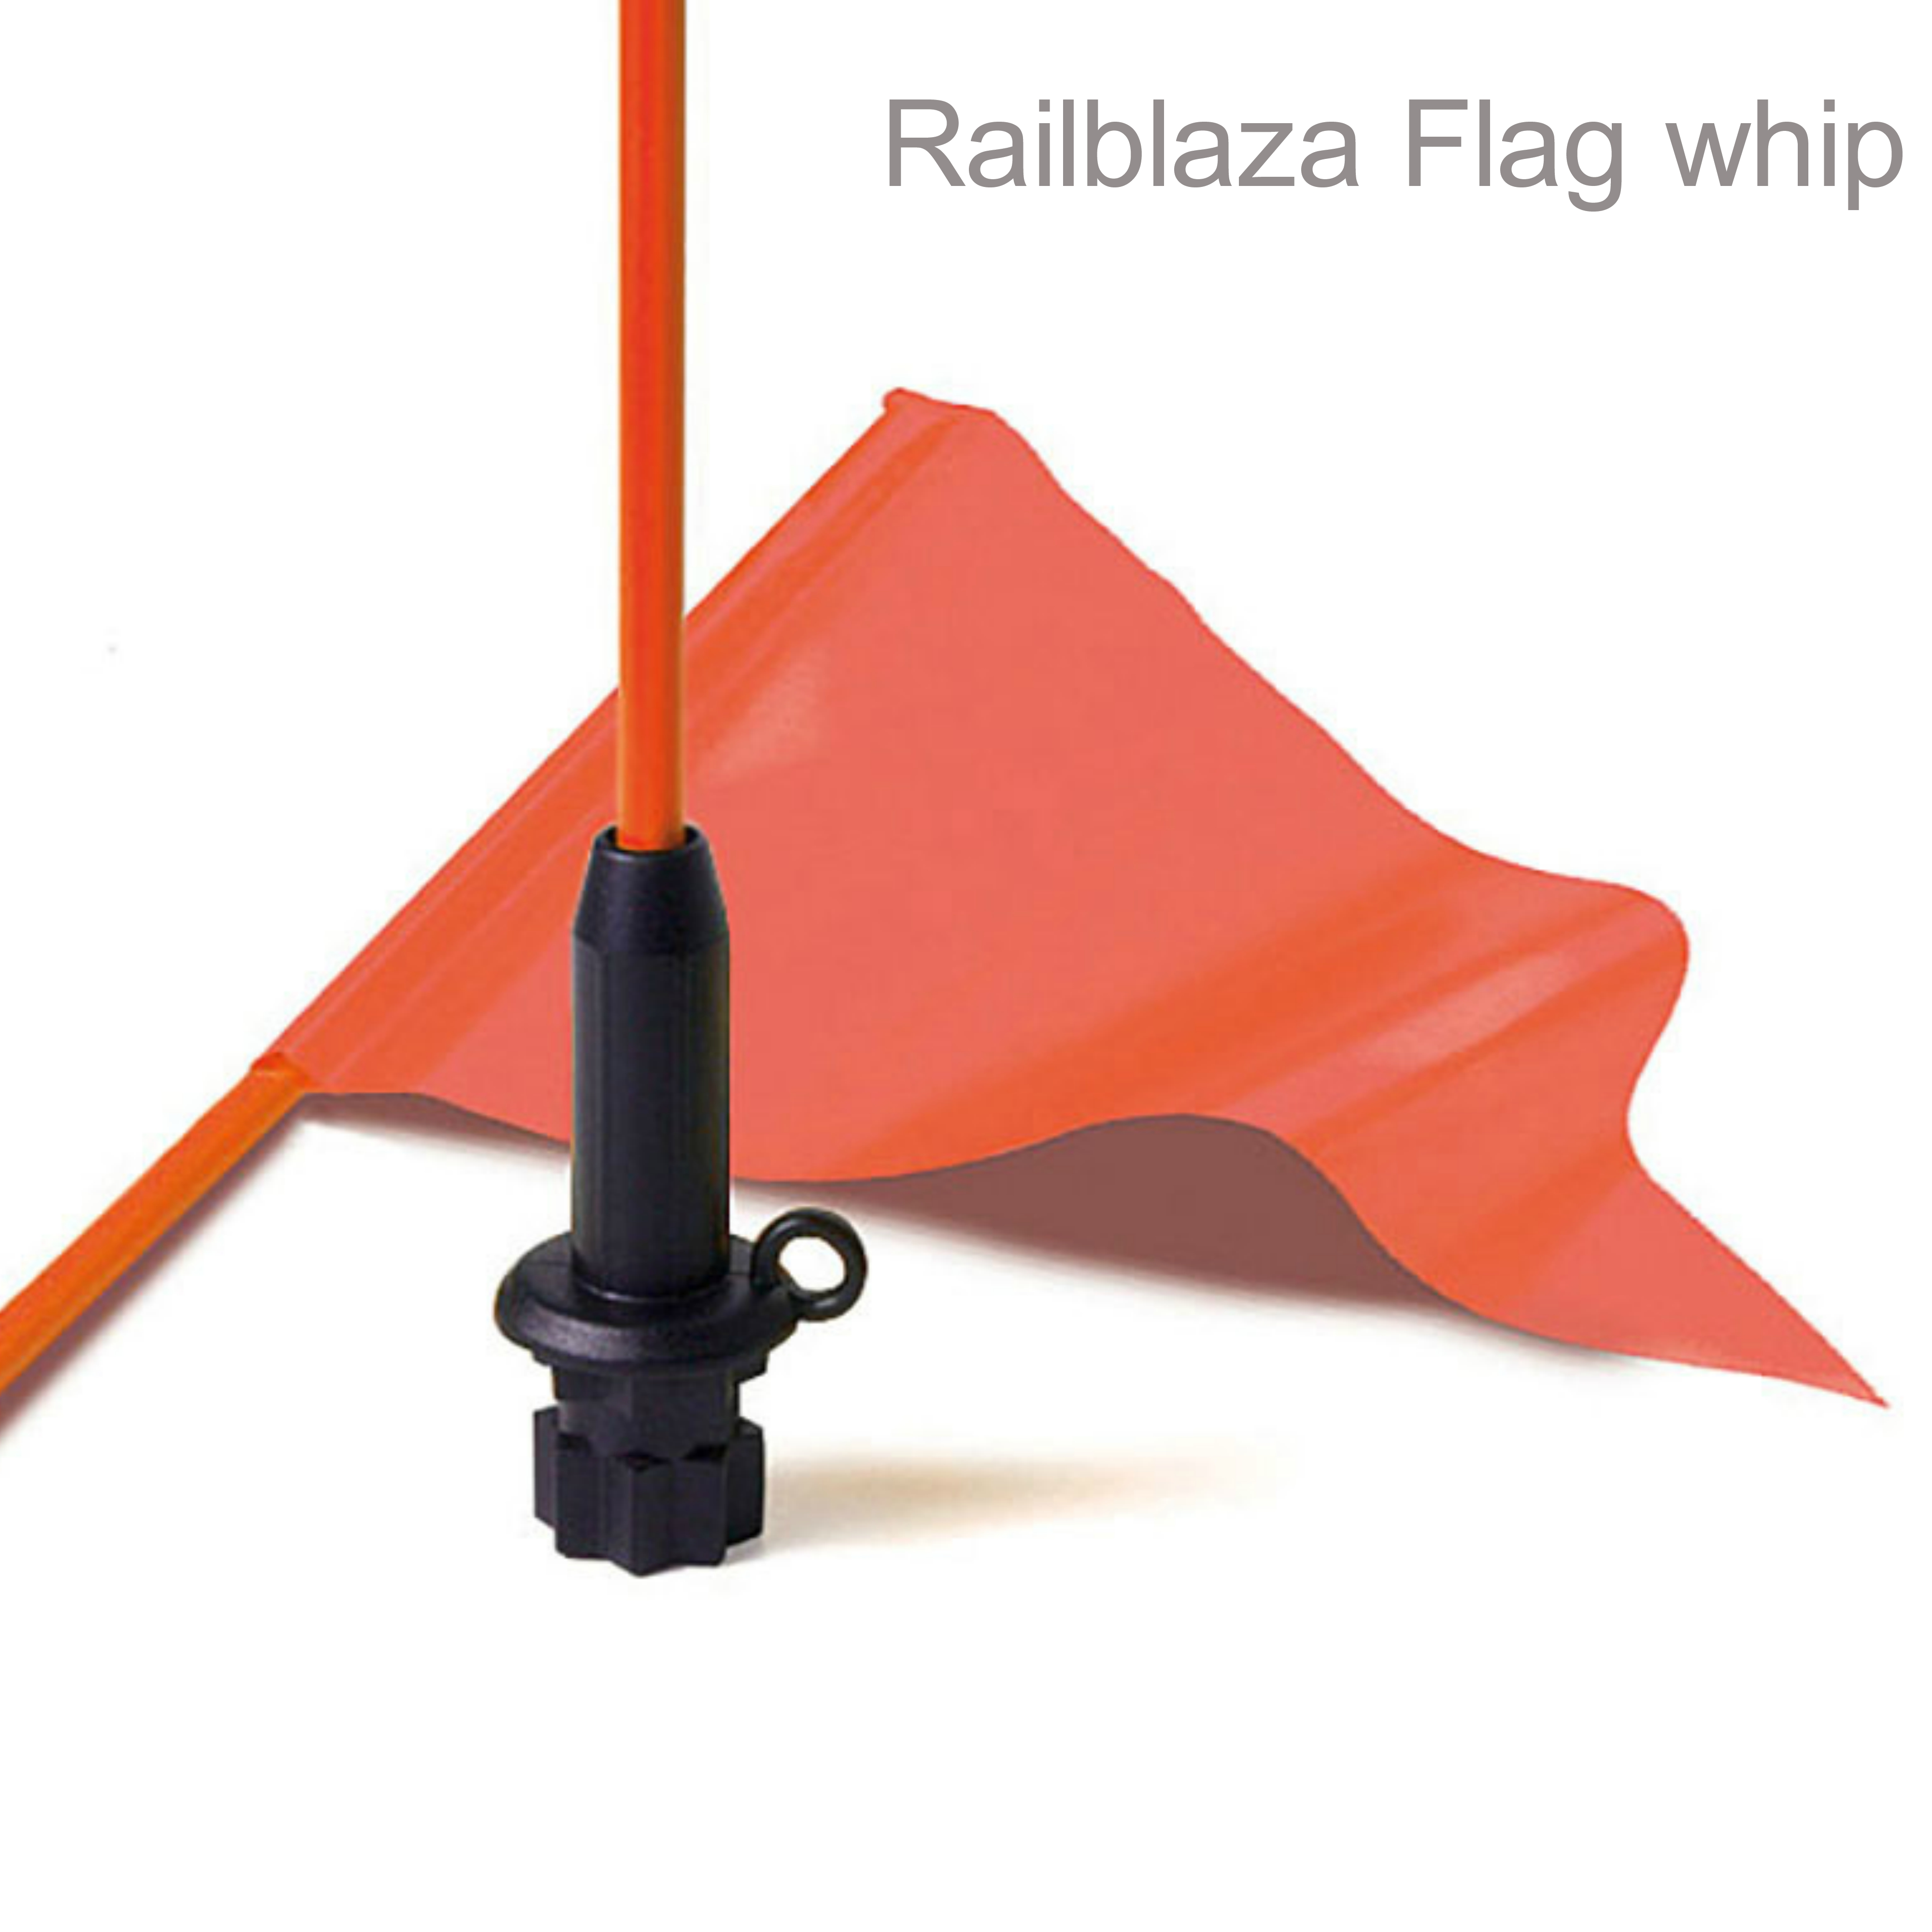 Railblaza Flag Whip & Pennant - Black Base|Light & Flexible|For Kayak Visibility